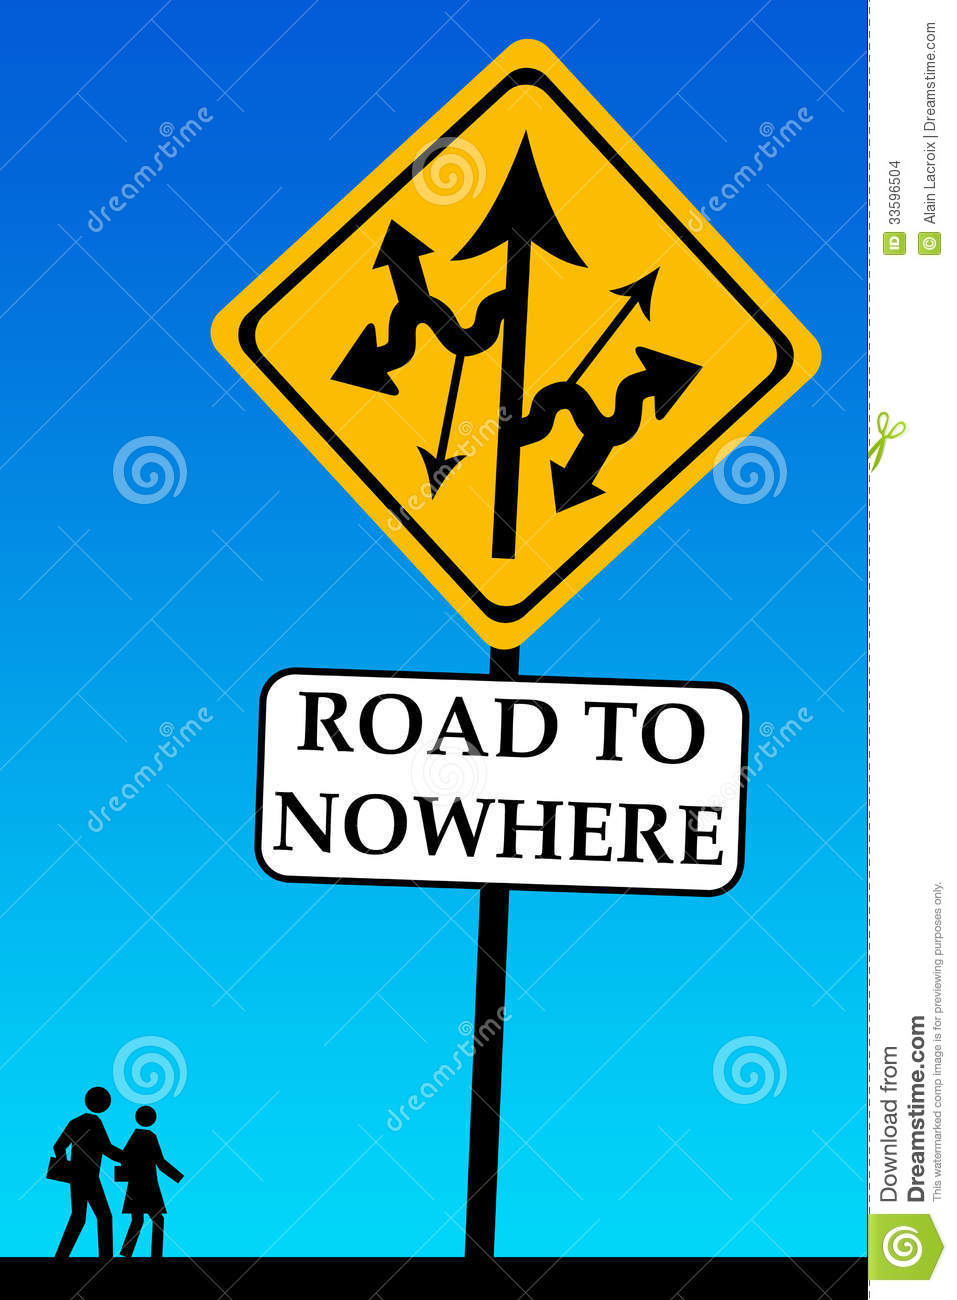 Road To Nowhere Stock Images.